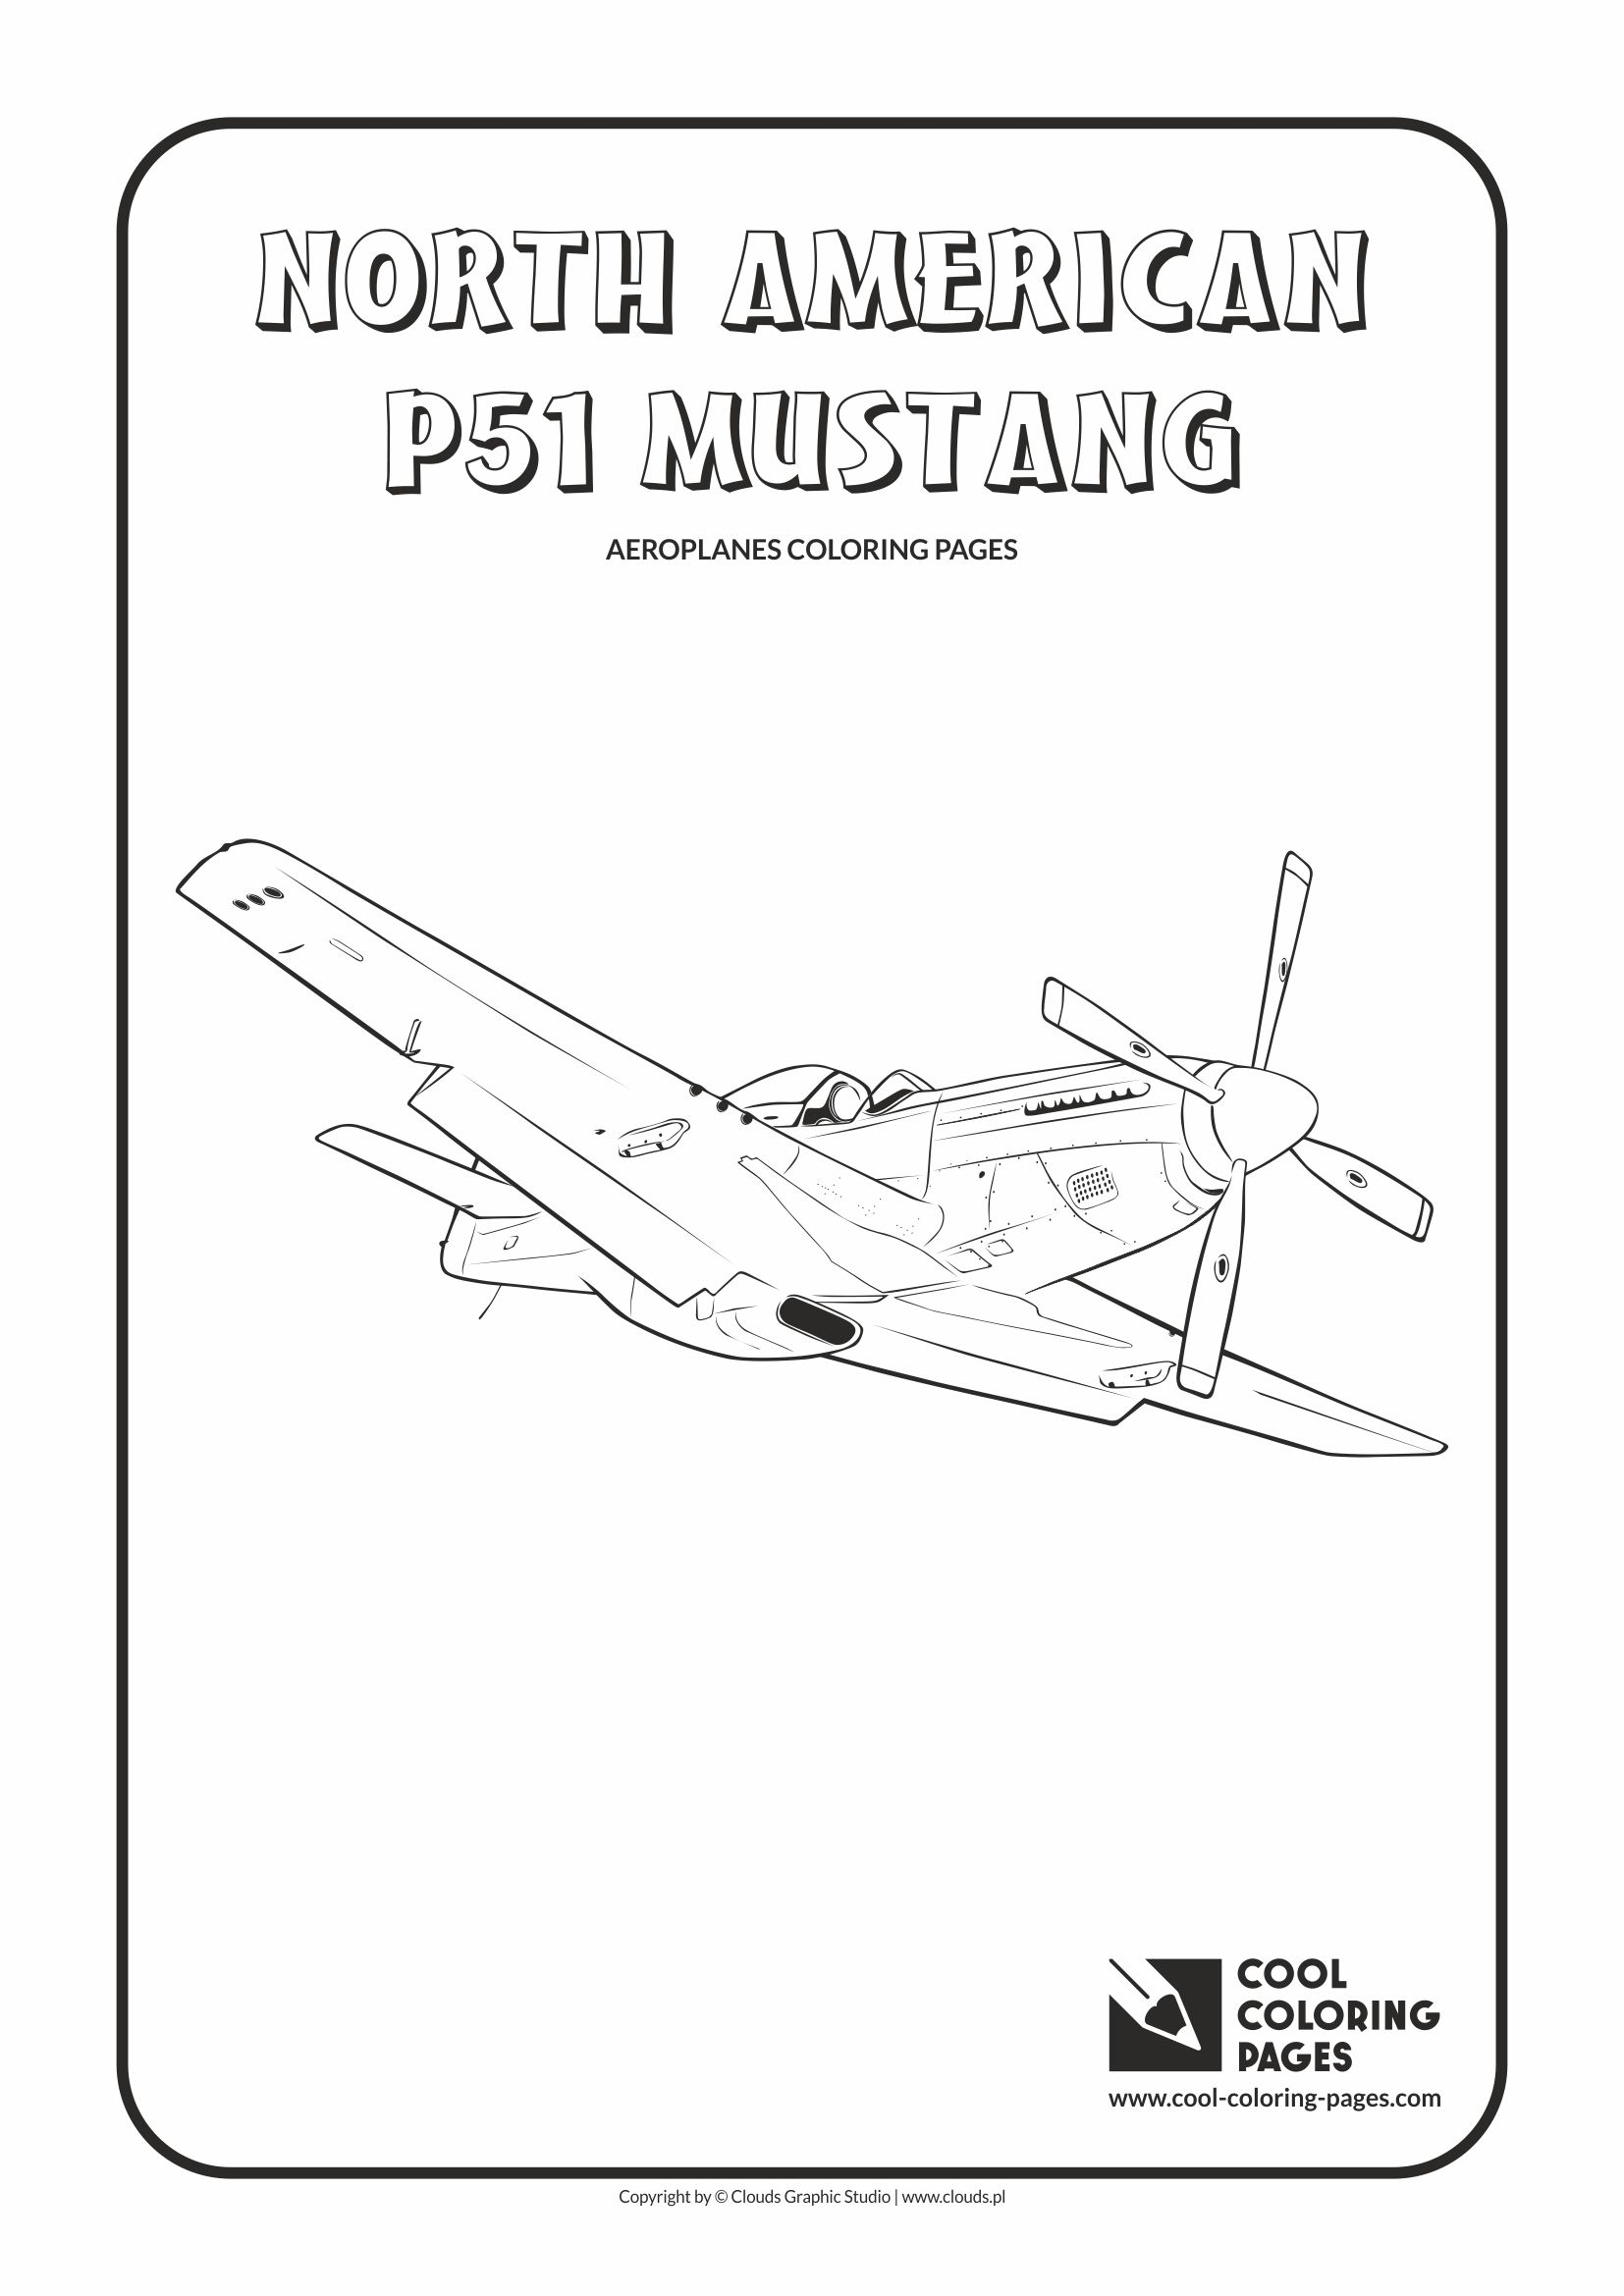 Cool Coloring Pages - Vehicles / North American P-51 Mustang / Coloring page with North American P-51 Mustang